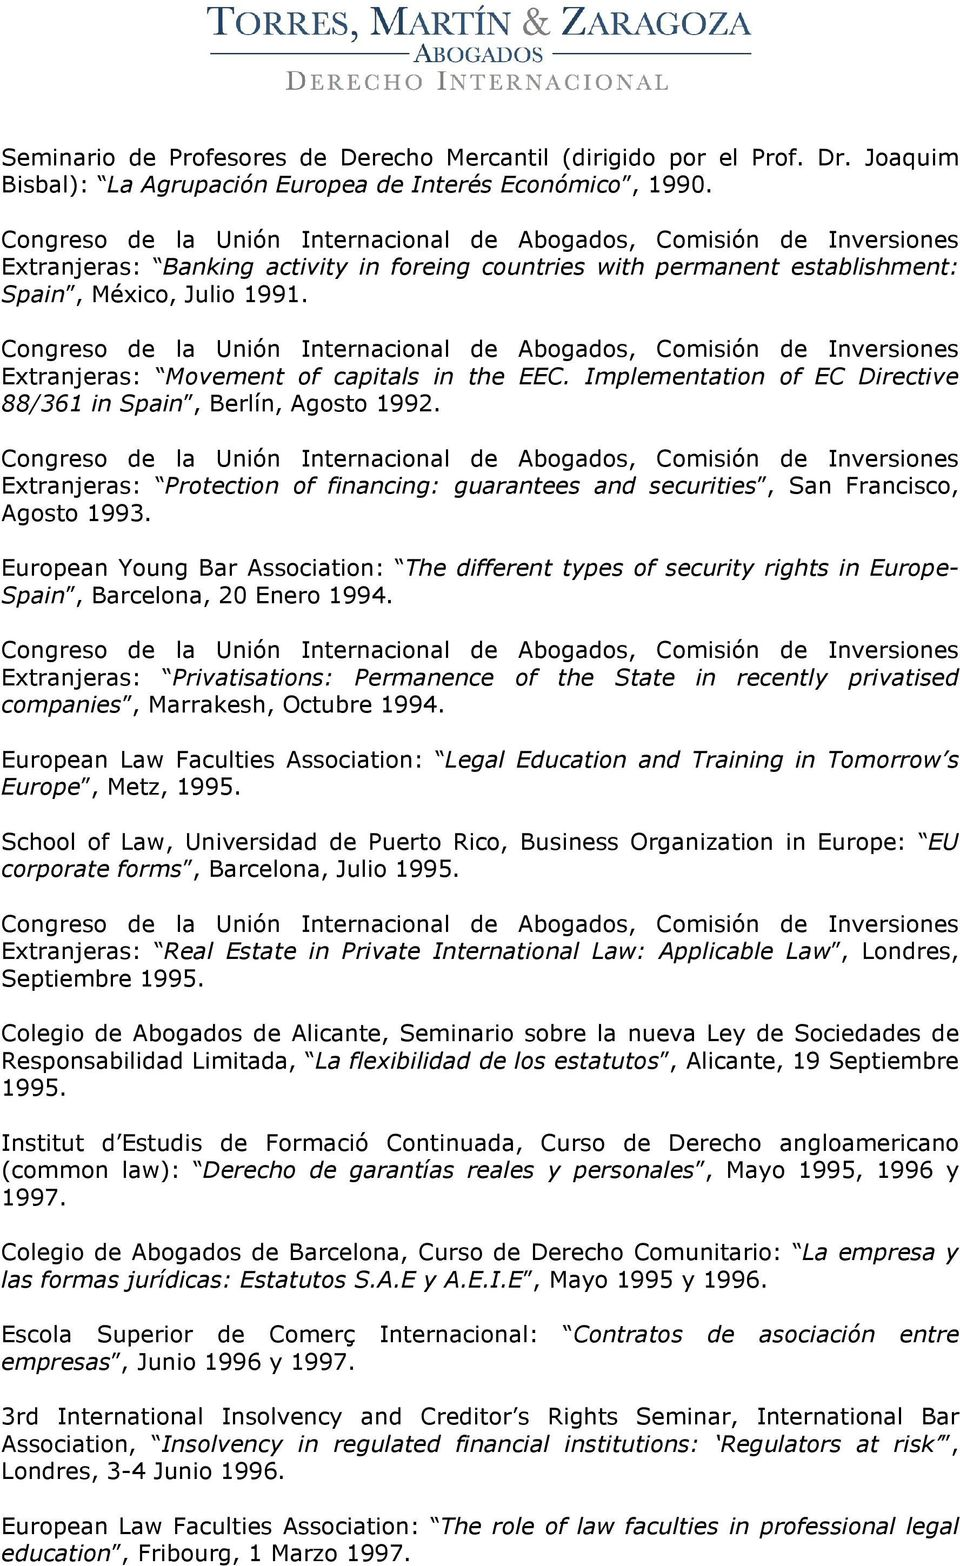 Implementation of EC Directive 88/361 in Spain, Berlín, Agosto 1992. Extranjeras: Protection of financing: guarantees and securities, San Francisco, Agosto 1993.